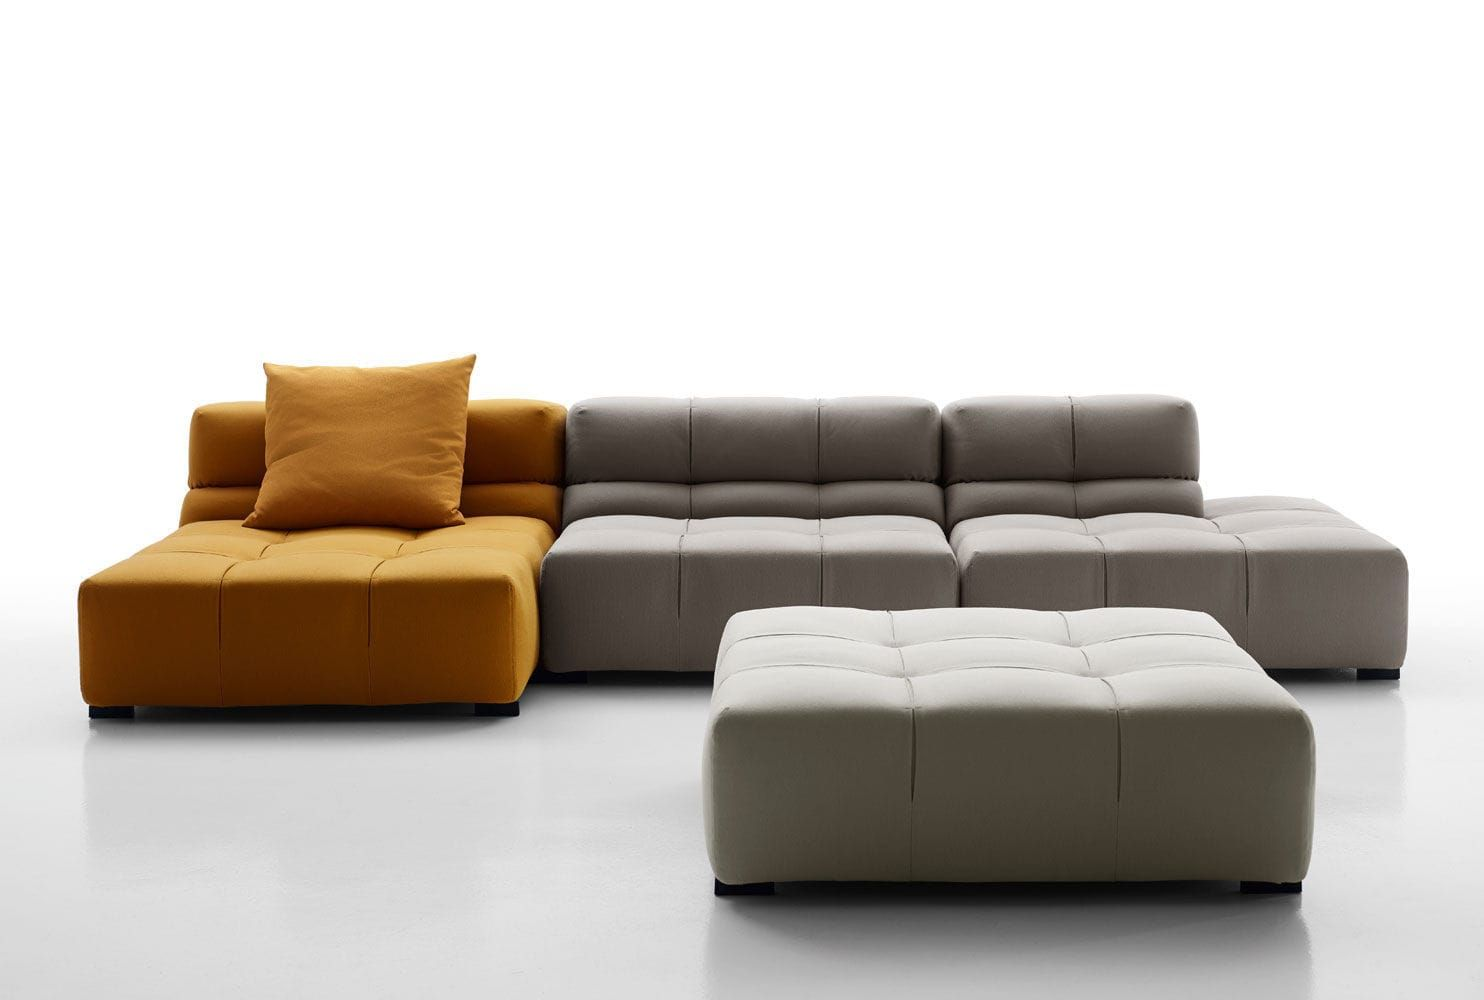 Pin by GARRIOSN on S沙发 in 2019 | Sofa design, Modular sofa ...